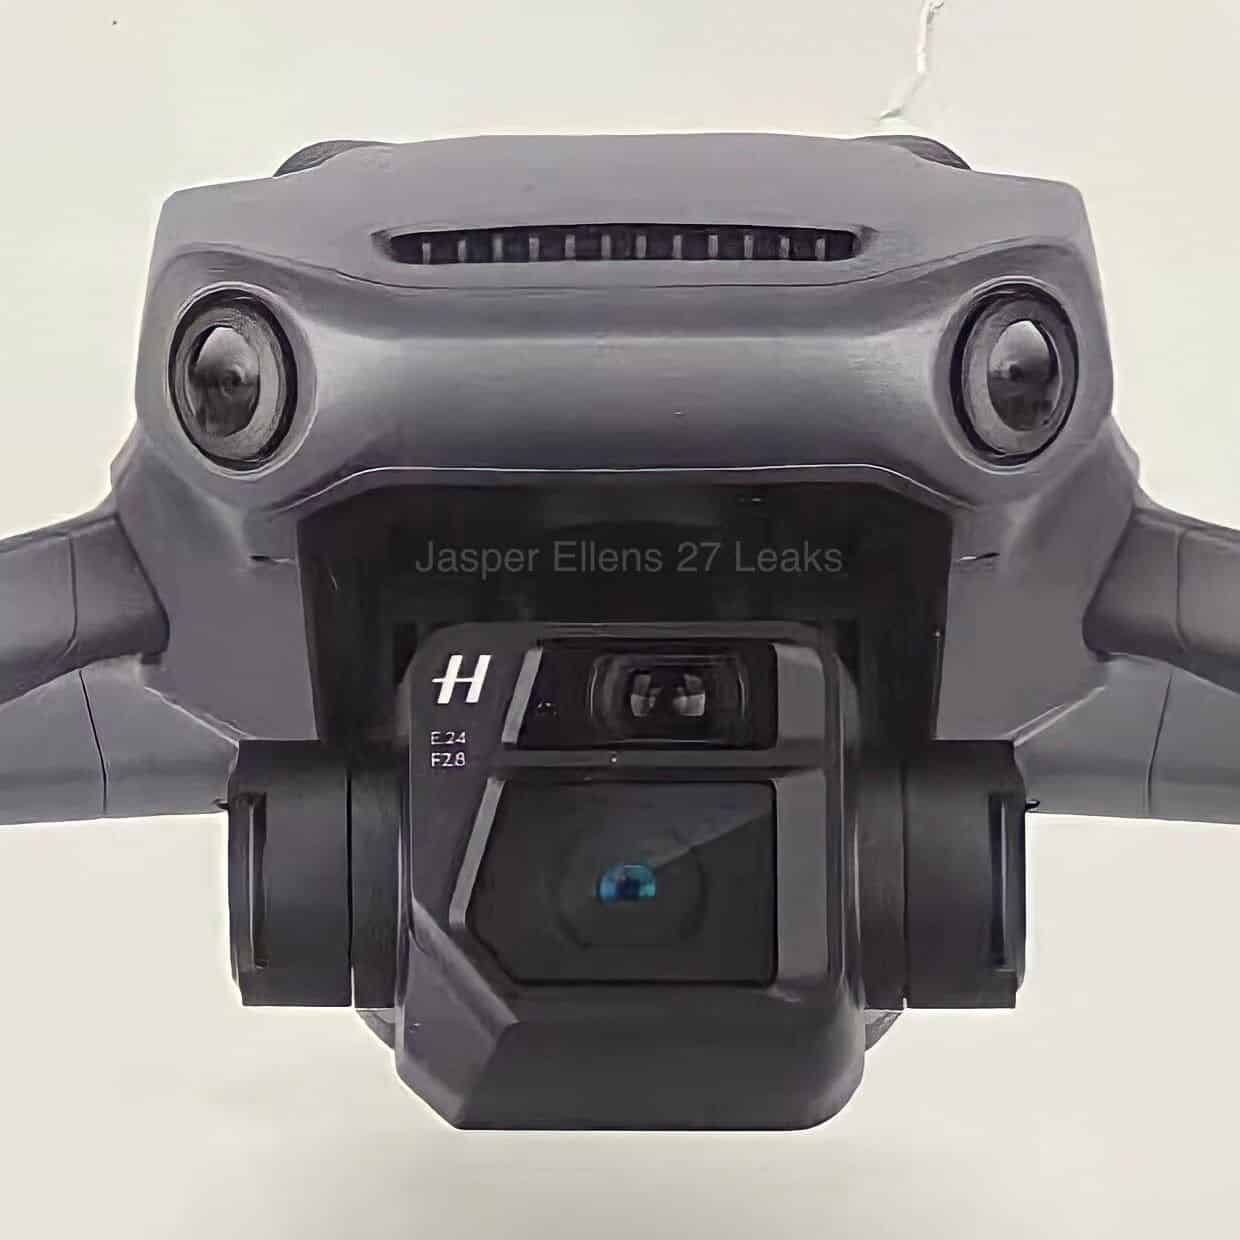 More details of DJI Mavic 3 drone revealed in newly leaked photos